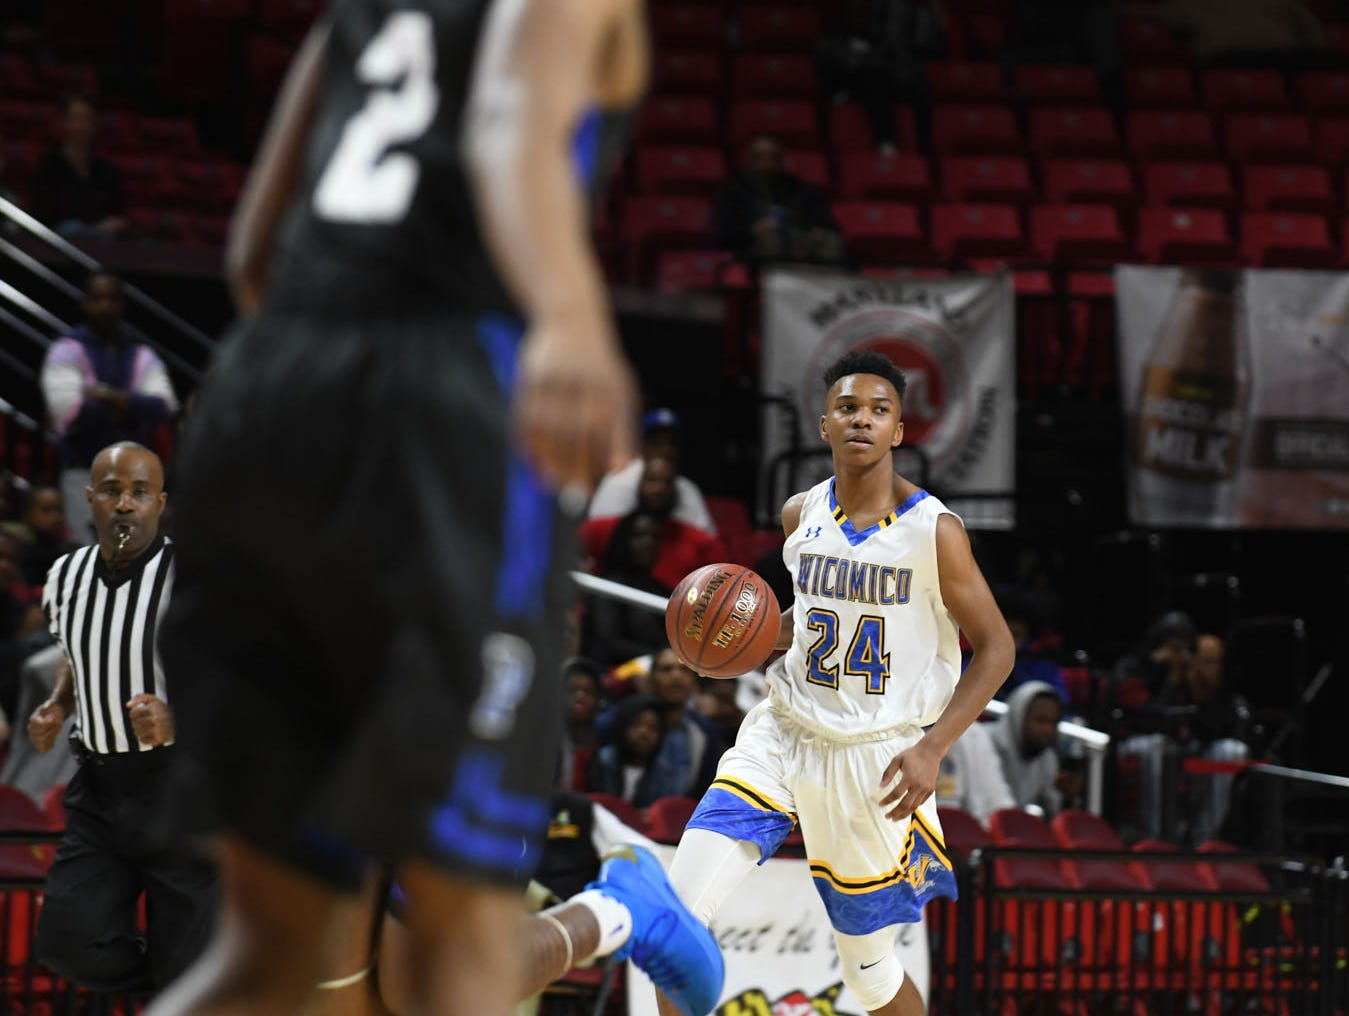 Wi-Hi's Jaden Baker brings the ball down the court against Patterson High School during the MPSSA 2A boys state championship on Saturday, March 16, 2019 at The Xfinity Center in College Park, Md.